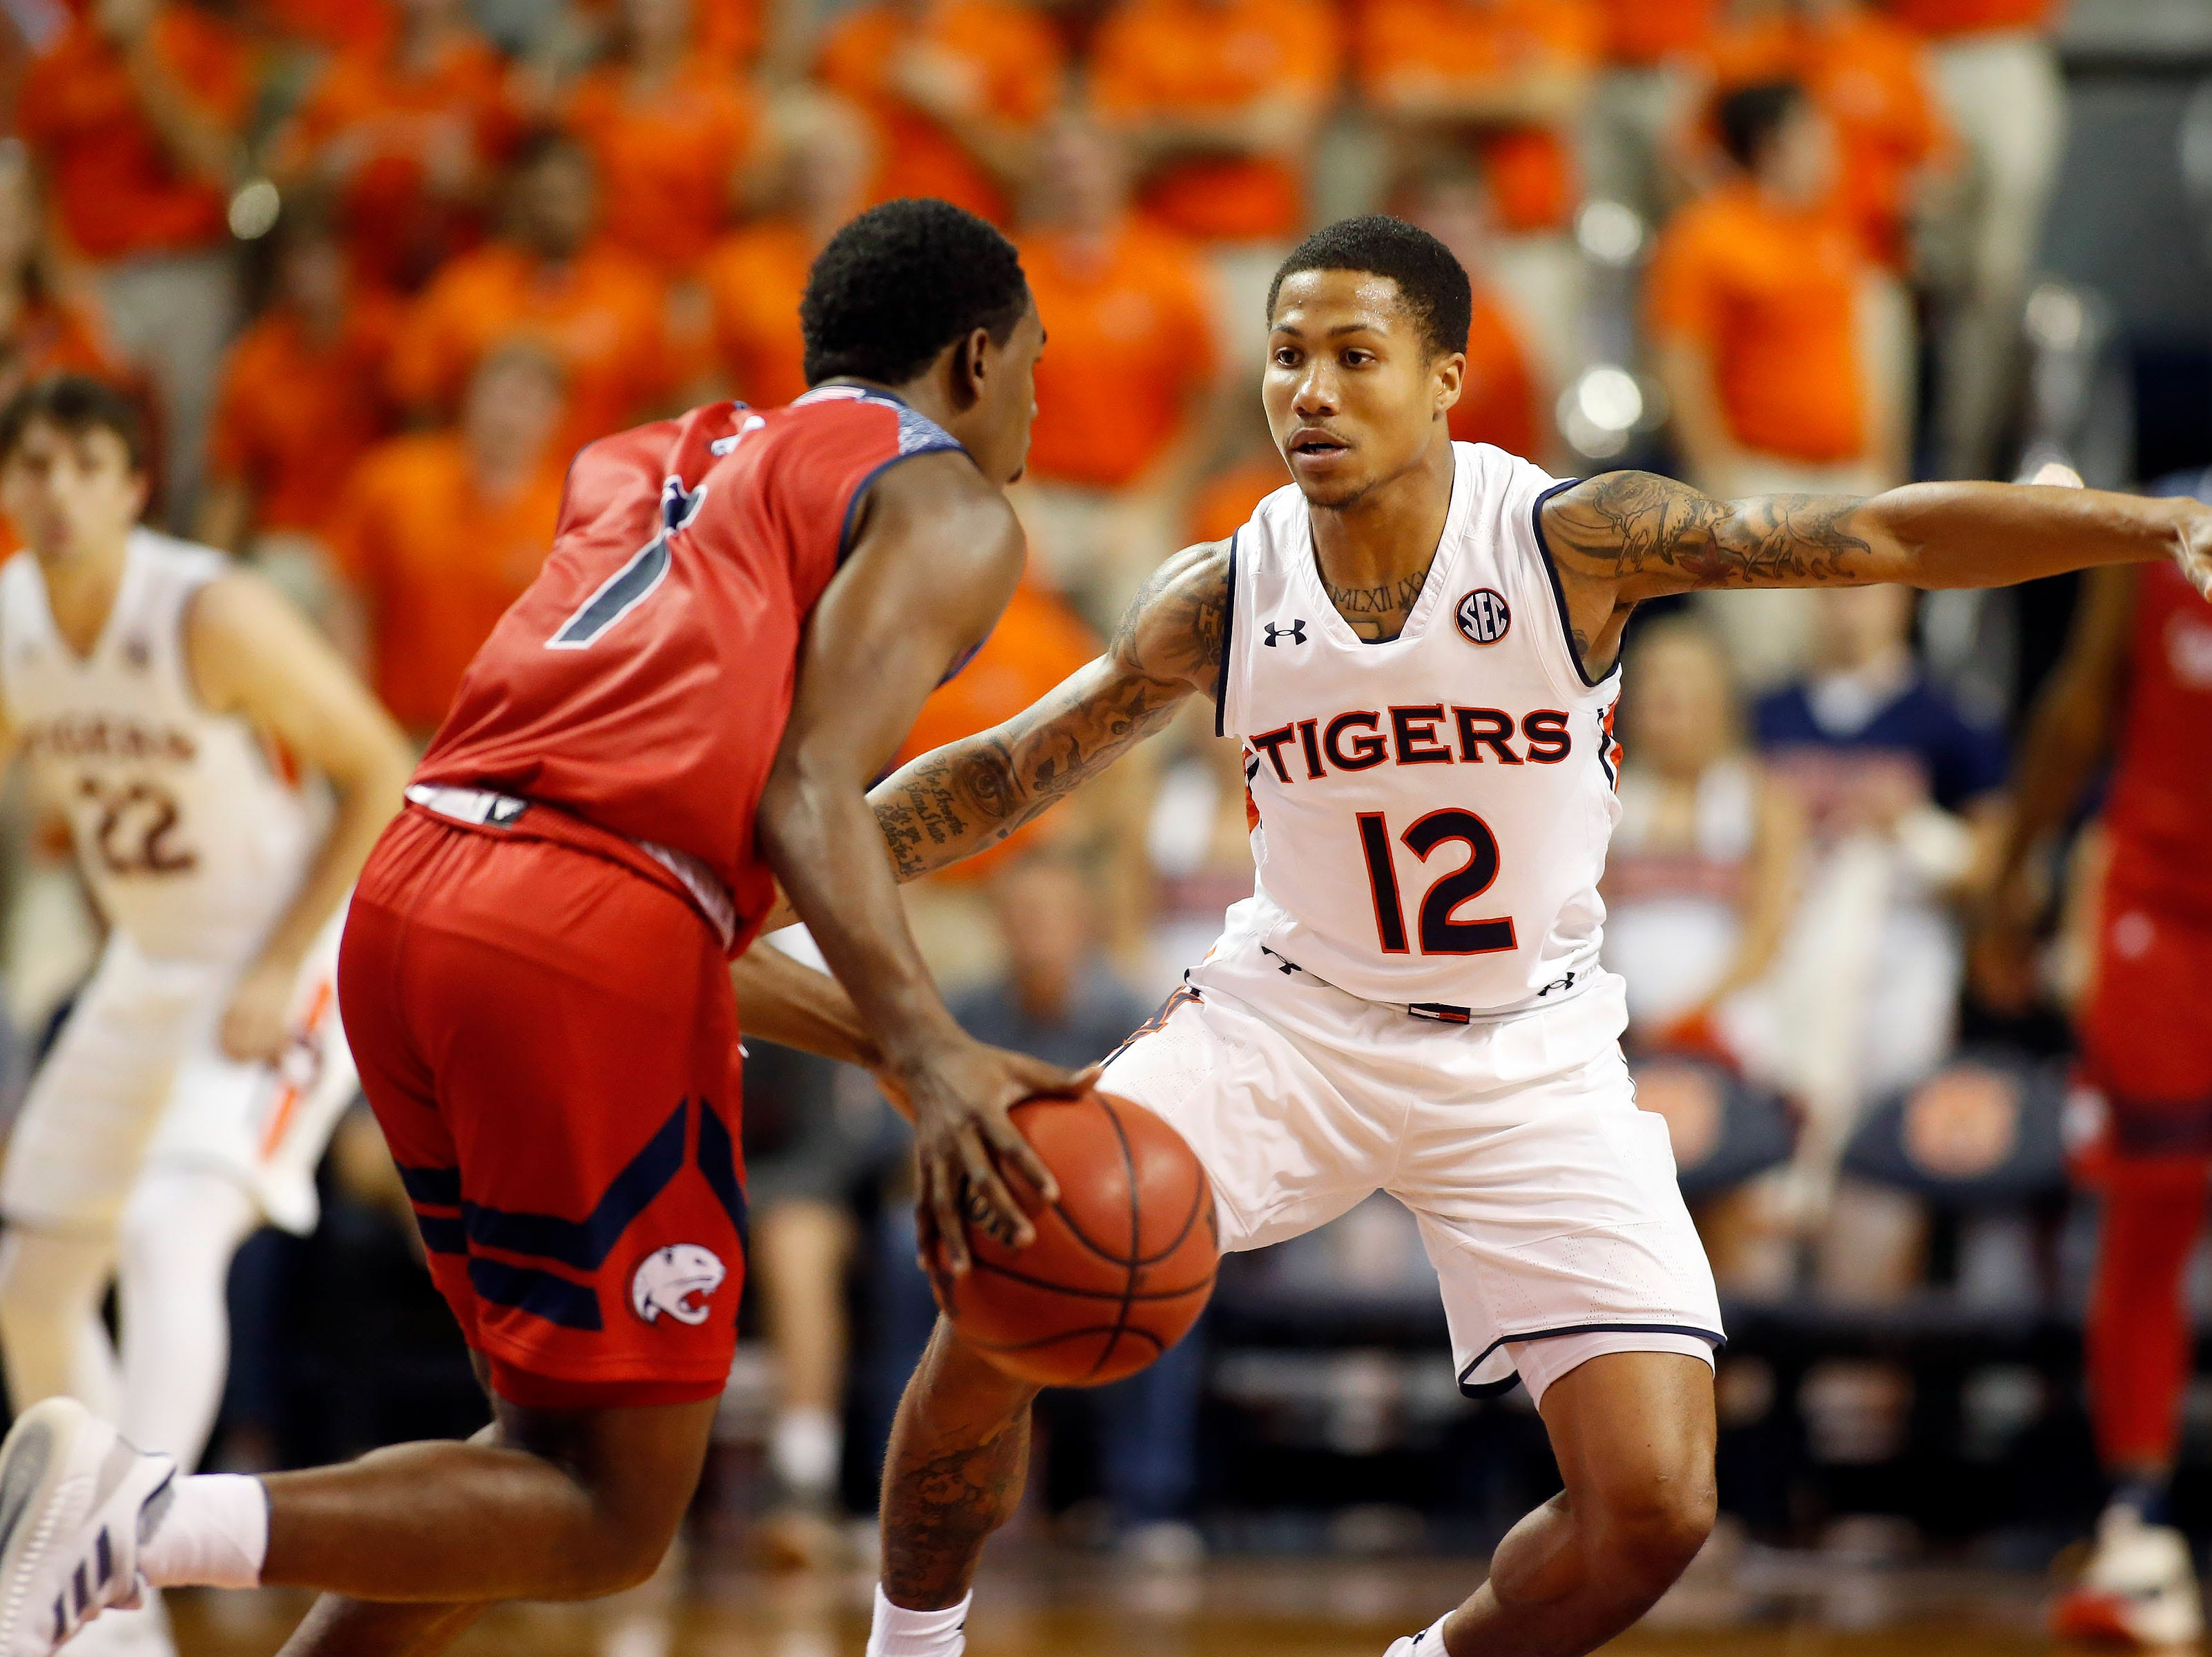 Nov 6, 2018; Auburn, AL, USA; Auburn Tigers guard J'Von McCormick (12) pressures South Alabama Jaguars guard Herb McGee during the second half at Auburn Arena. Mandatory Credit: John Reed-USA TODAY Sports